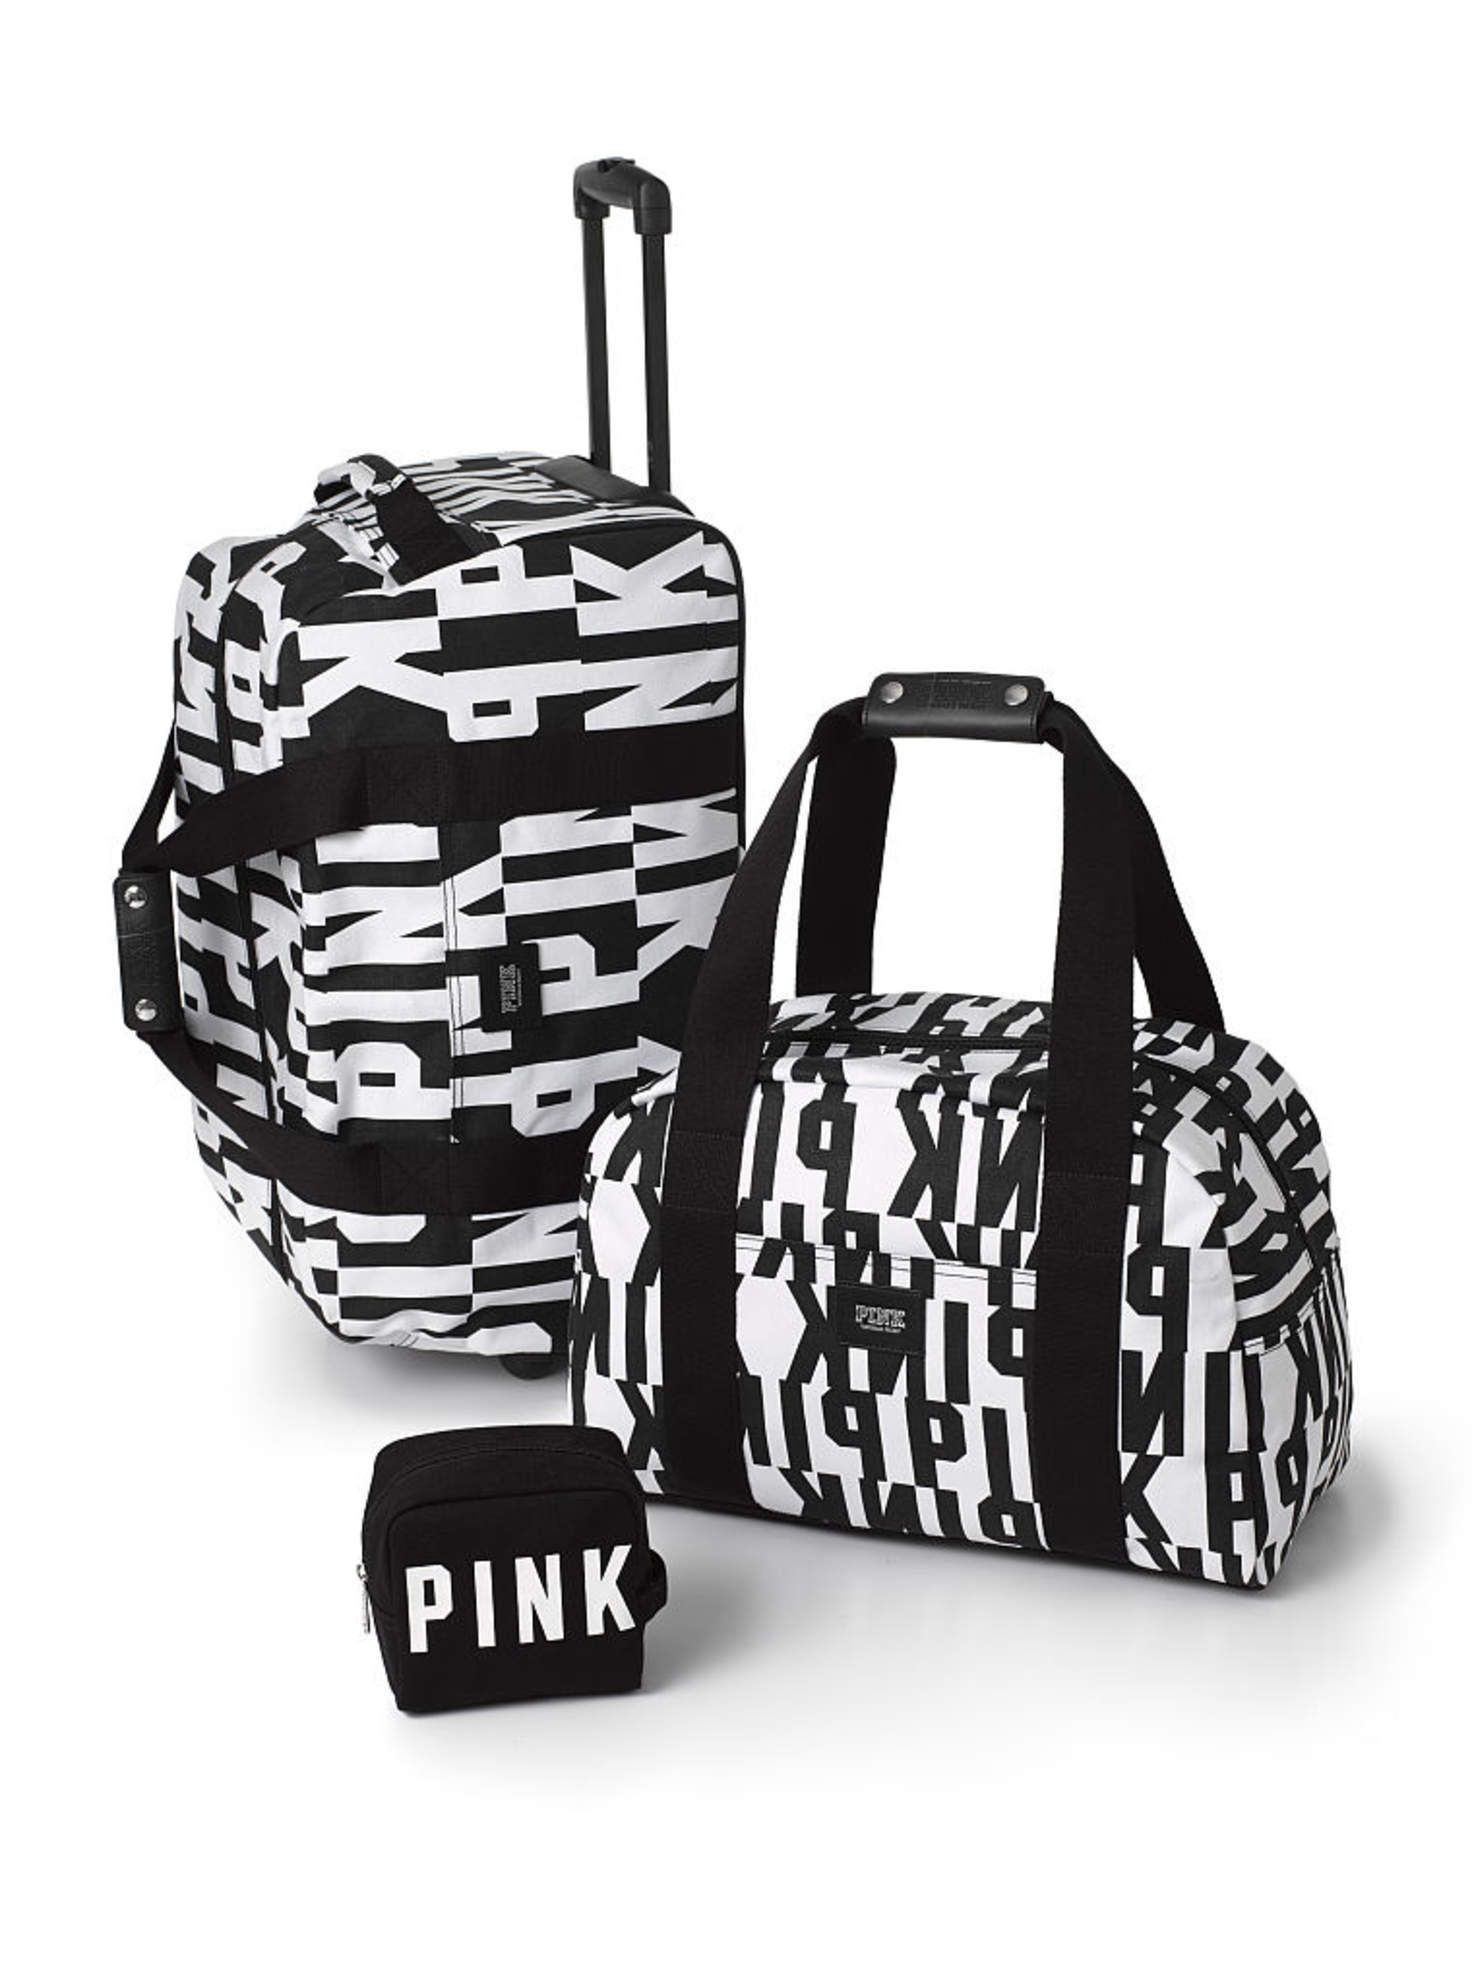 708a9c709aea5 3-piece Travel Set - PINK - Victoria's Secret | All things girly in ...